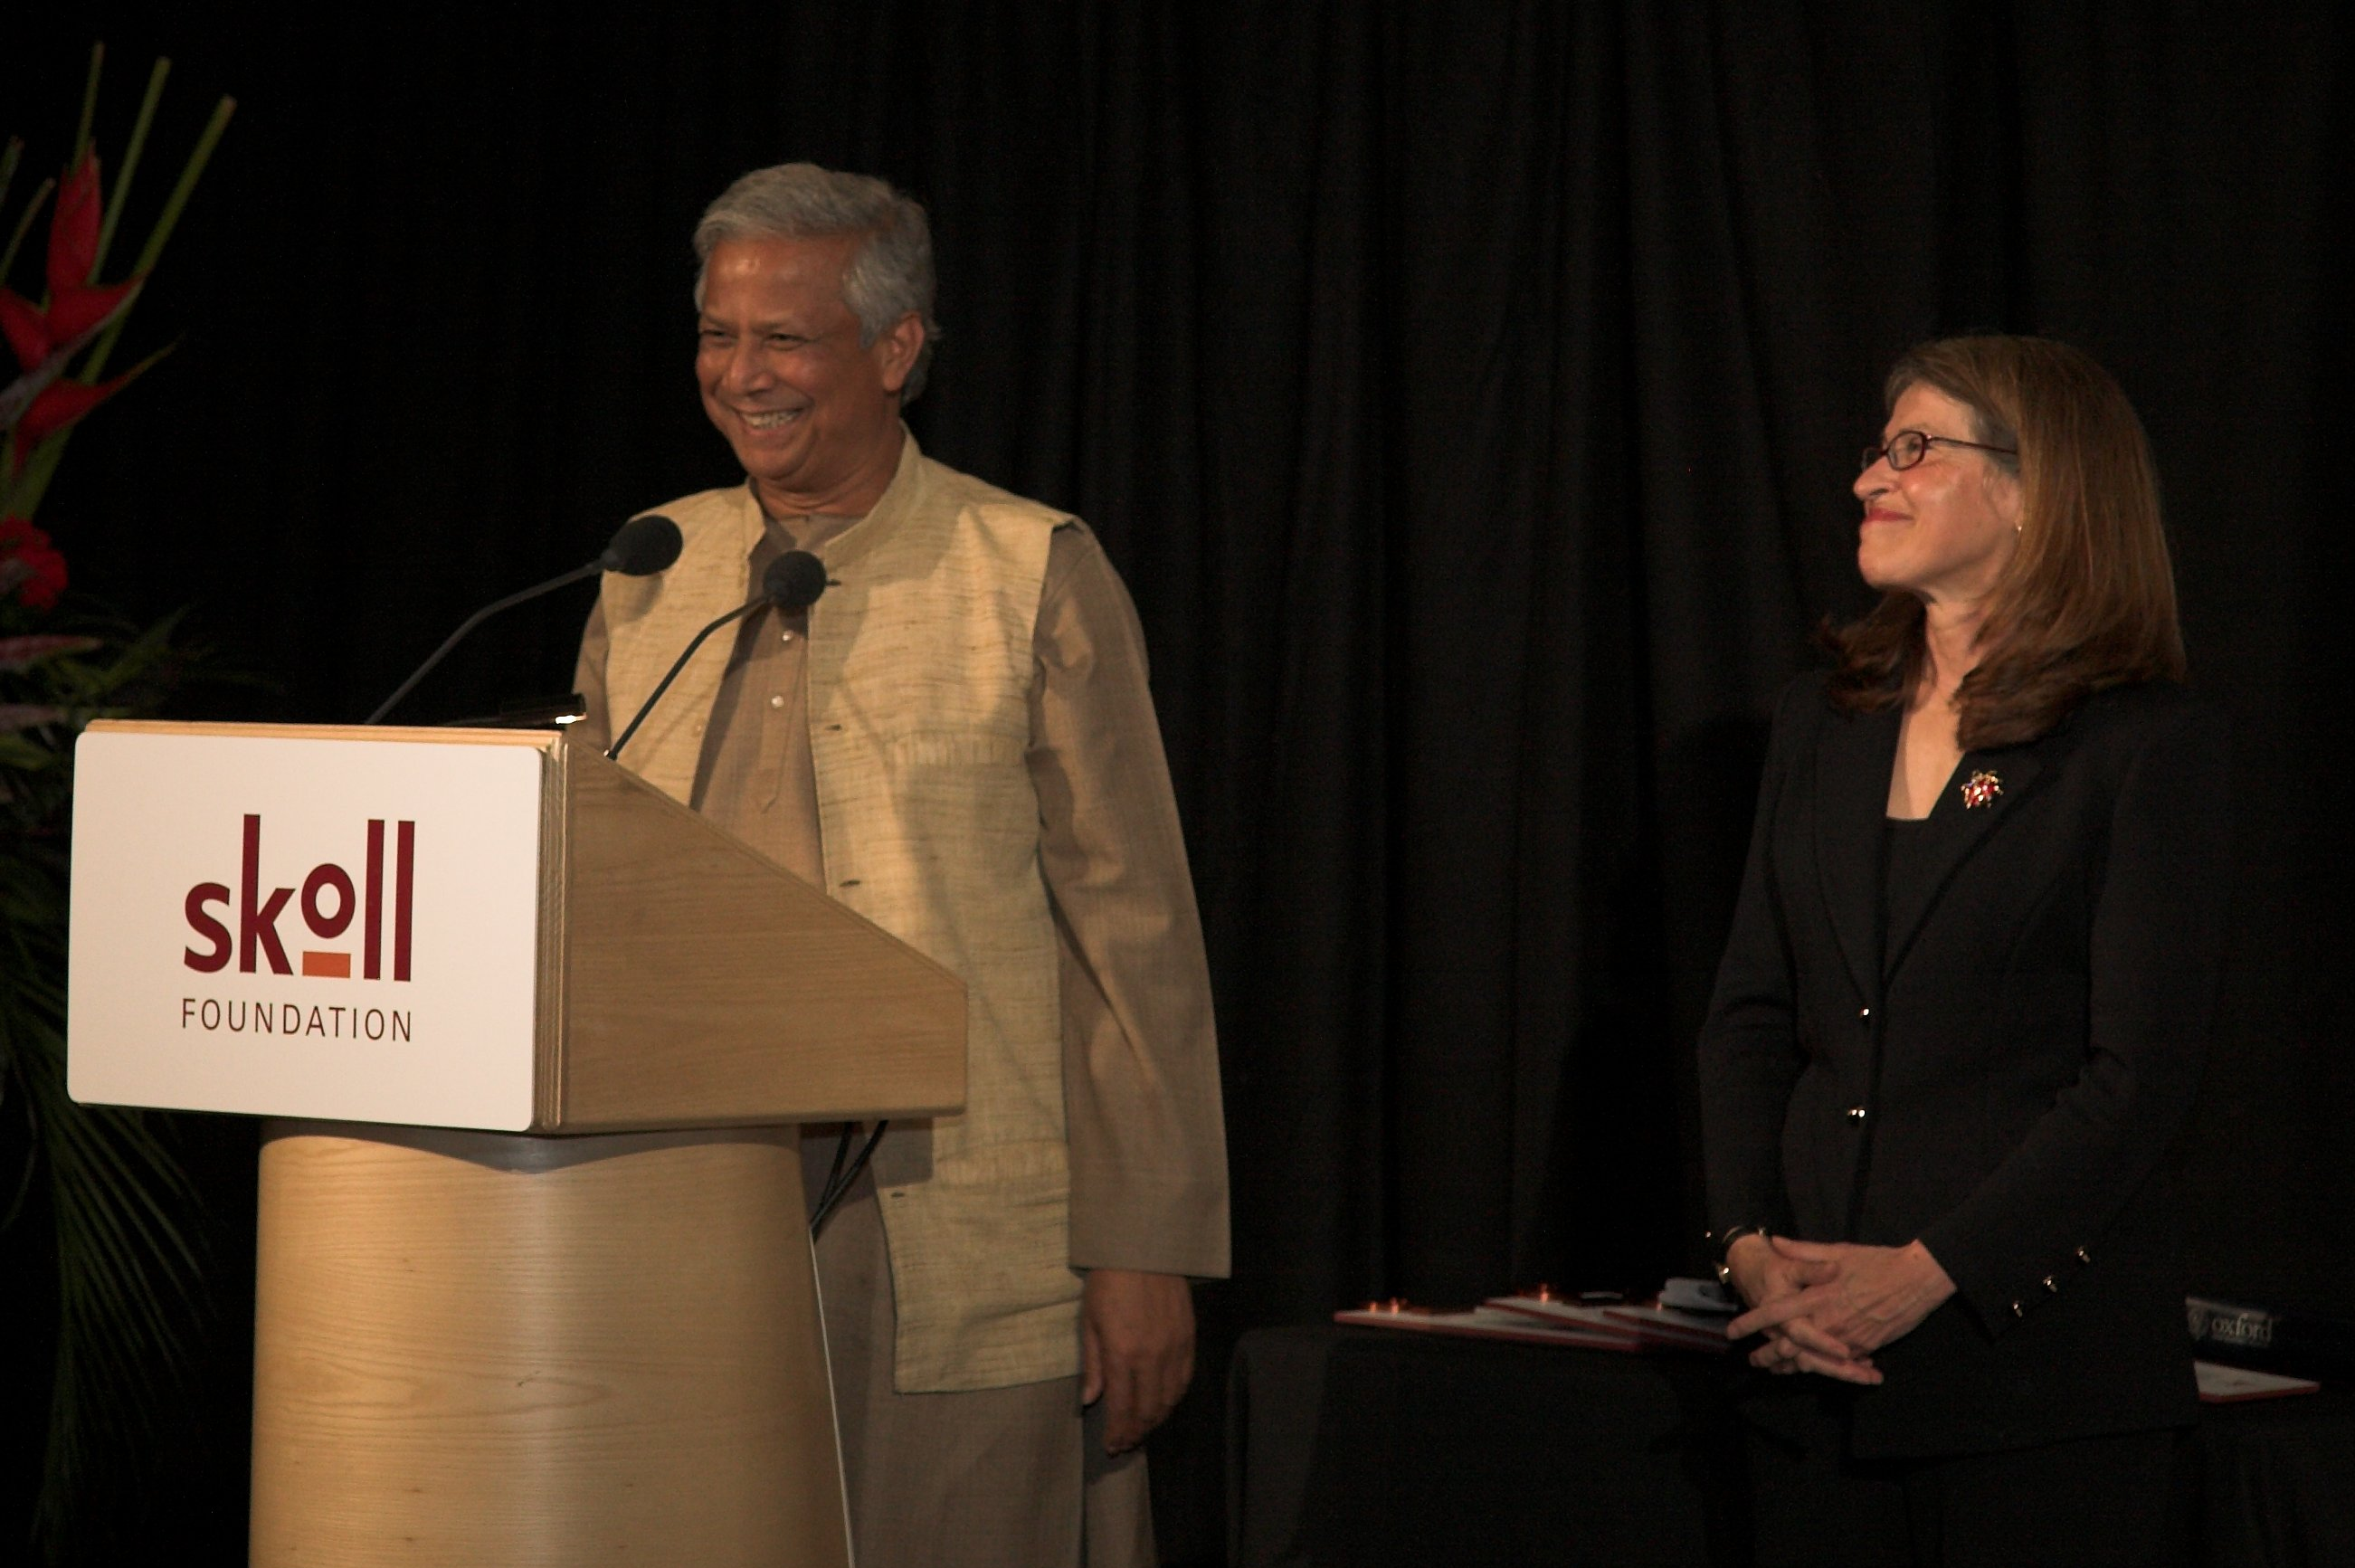 muhammad yunus and sally osberg